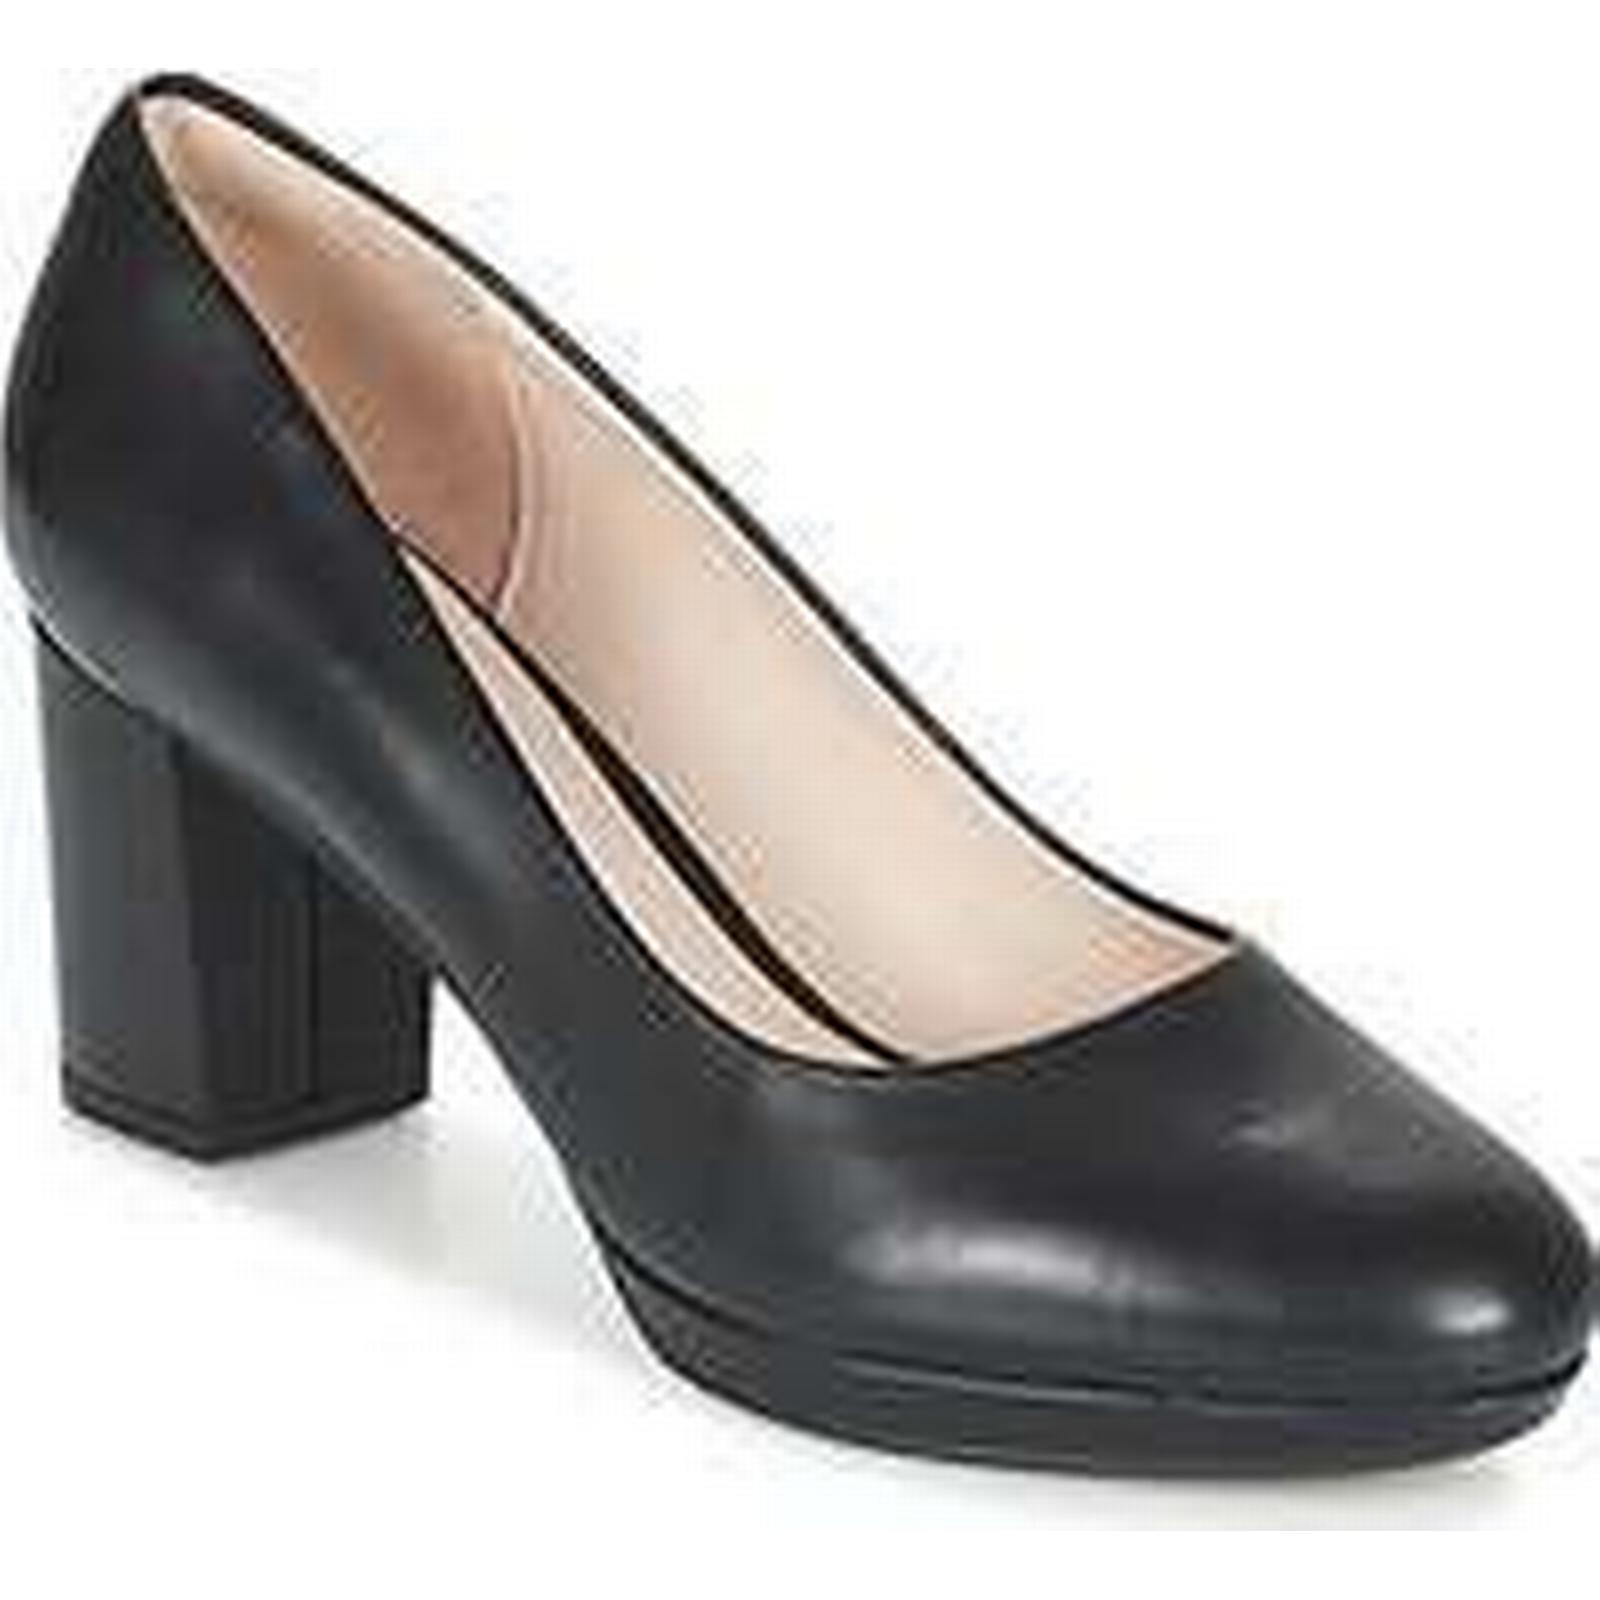 Spartoo.co.uk Clarks KELDA HOPE Black women's Court Shoes in Black HOPE d56e9e